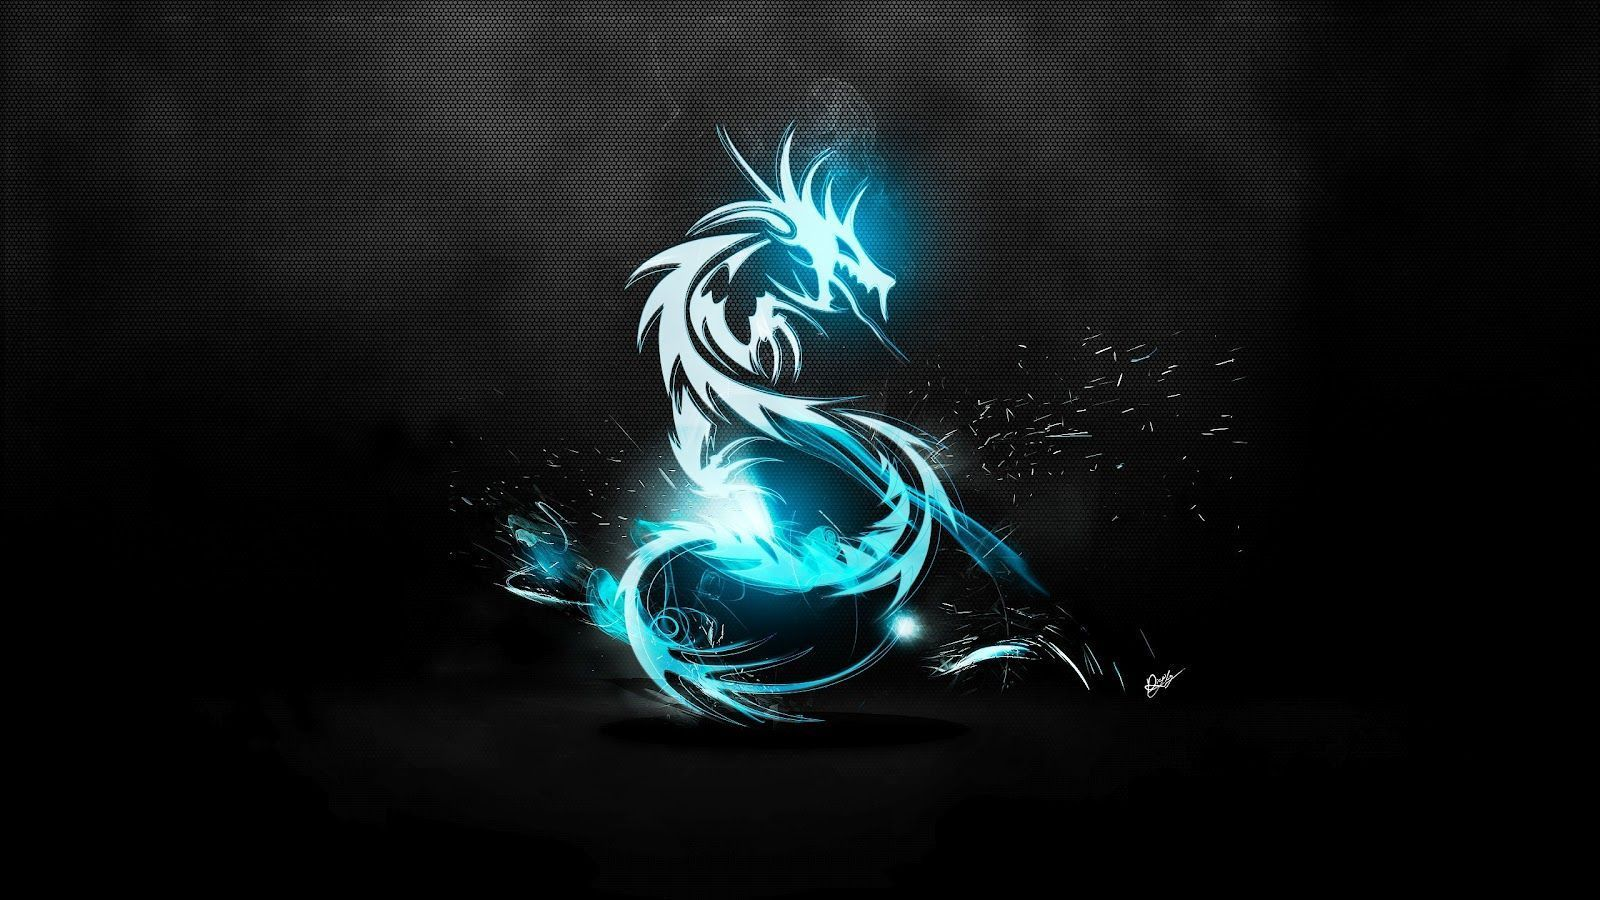 Neon Dragon Wallpapers Top Free Neon Dragon Backgrounds Wallpaperaccess